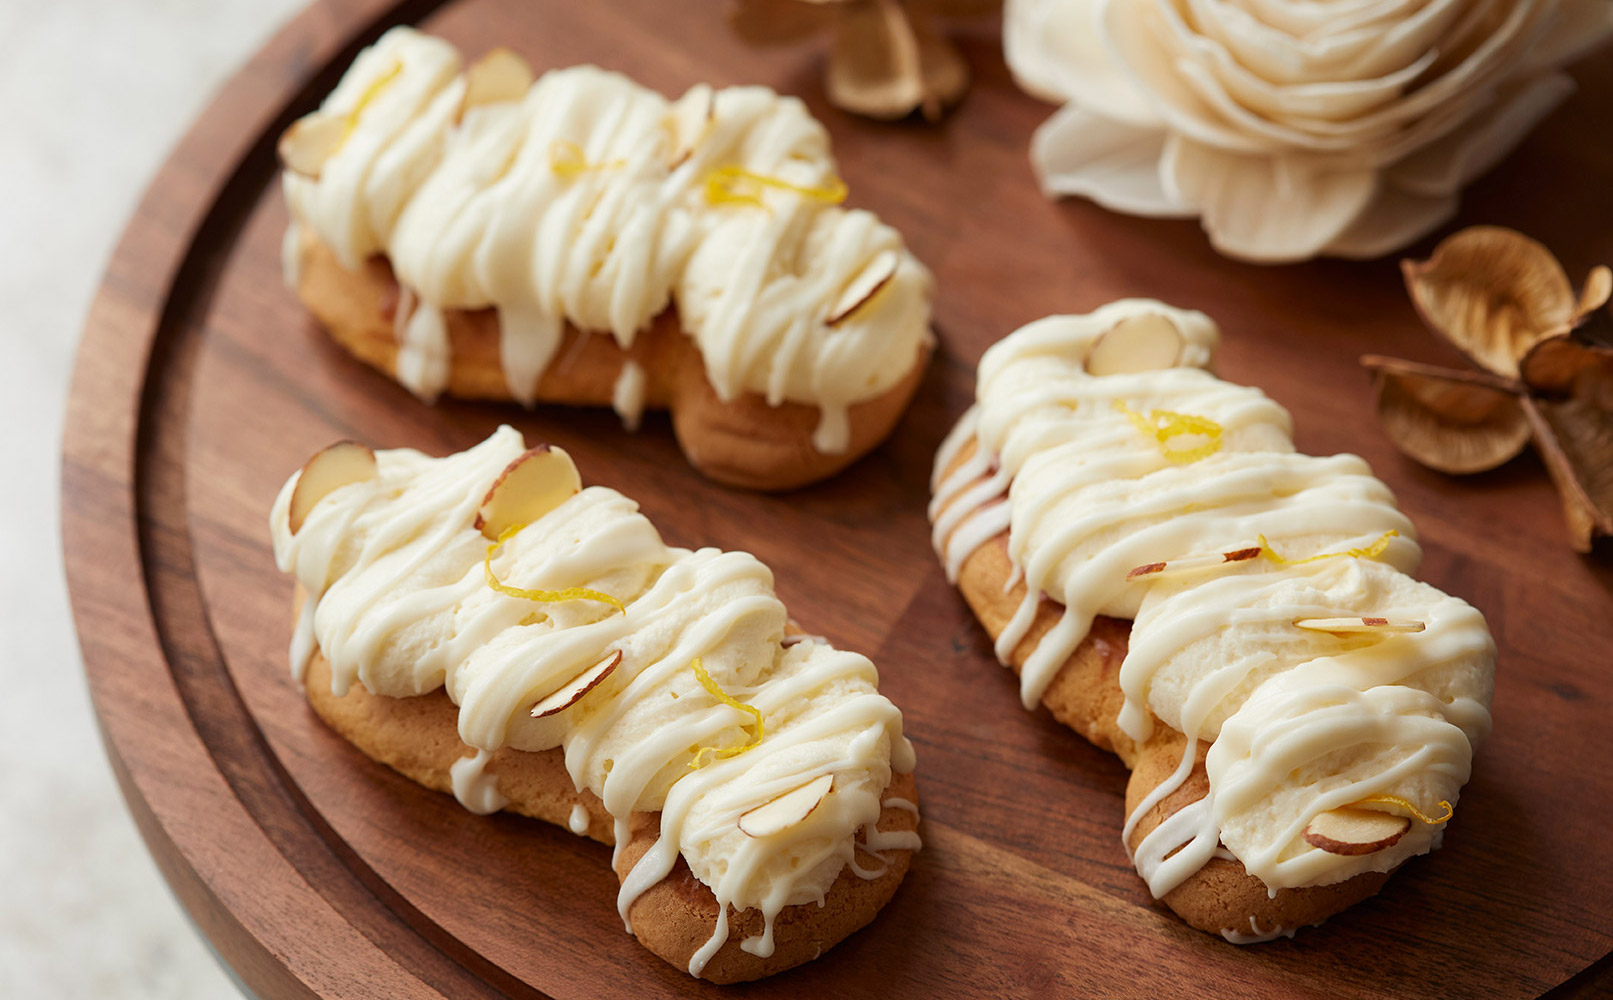 Lemon Crème French Pastry